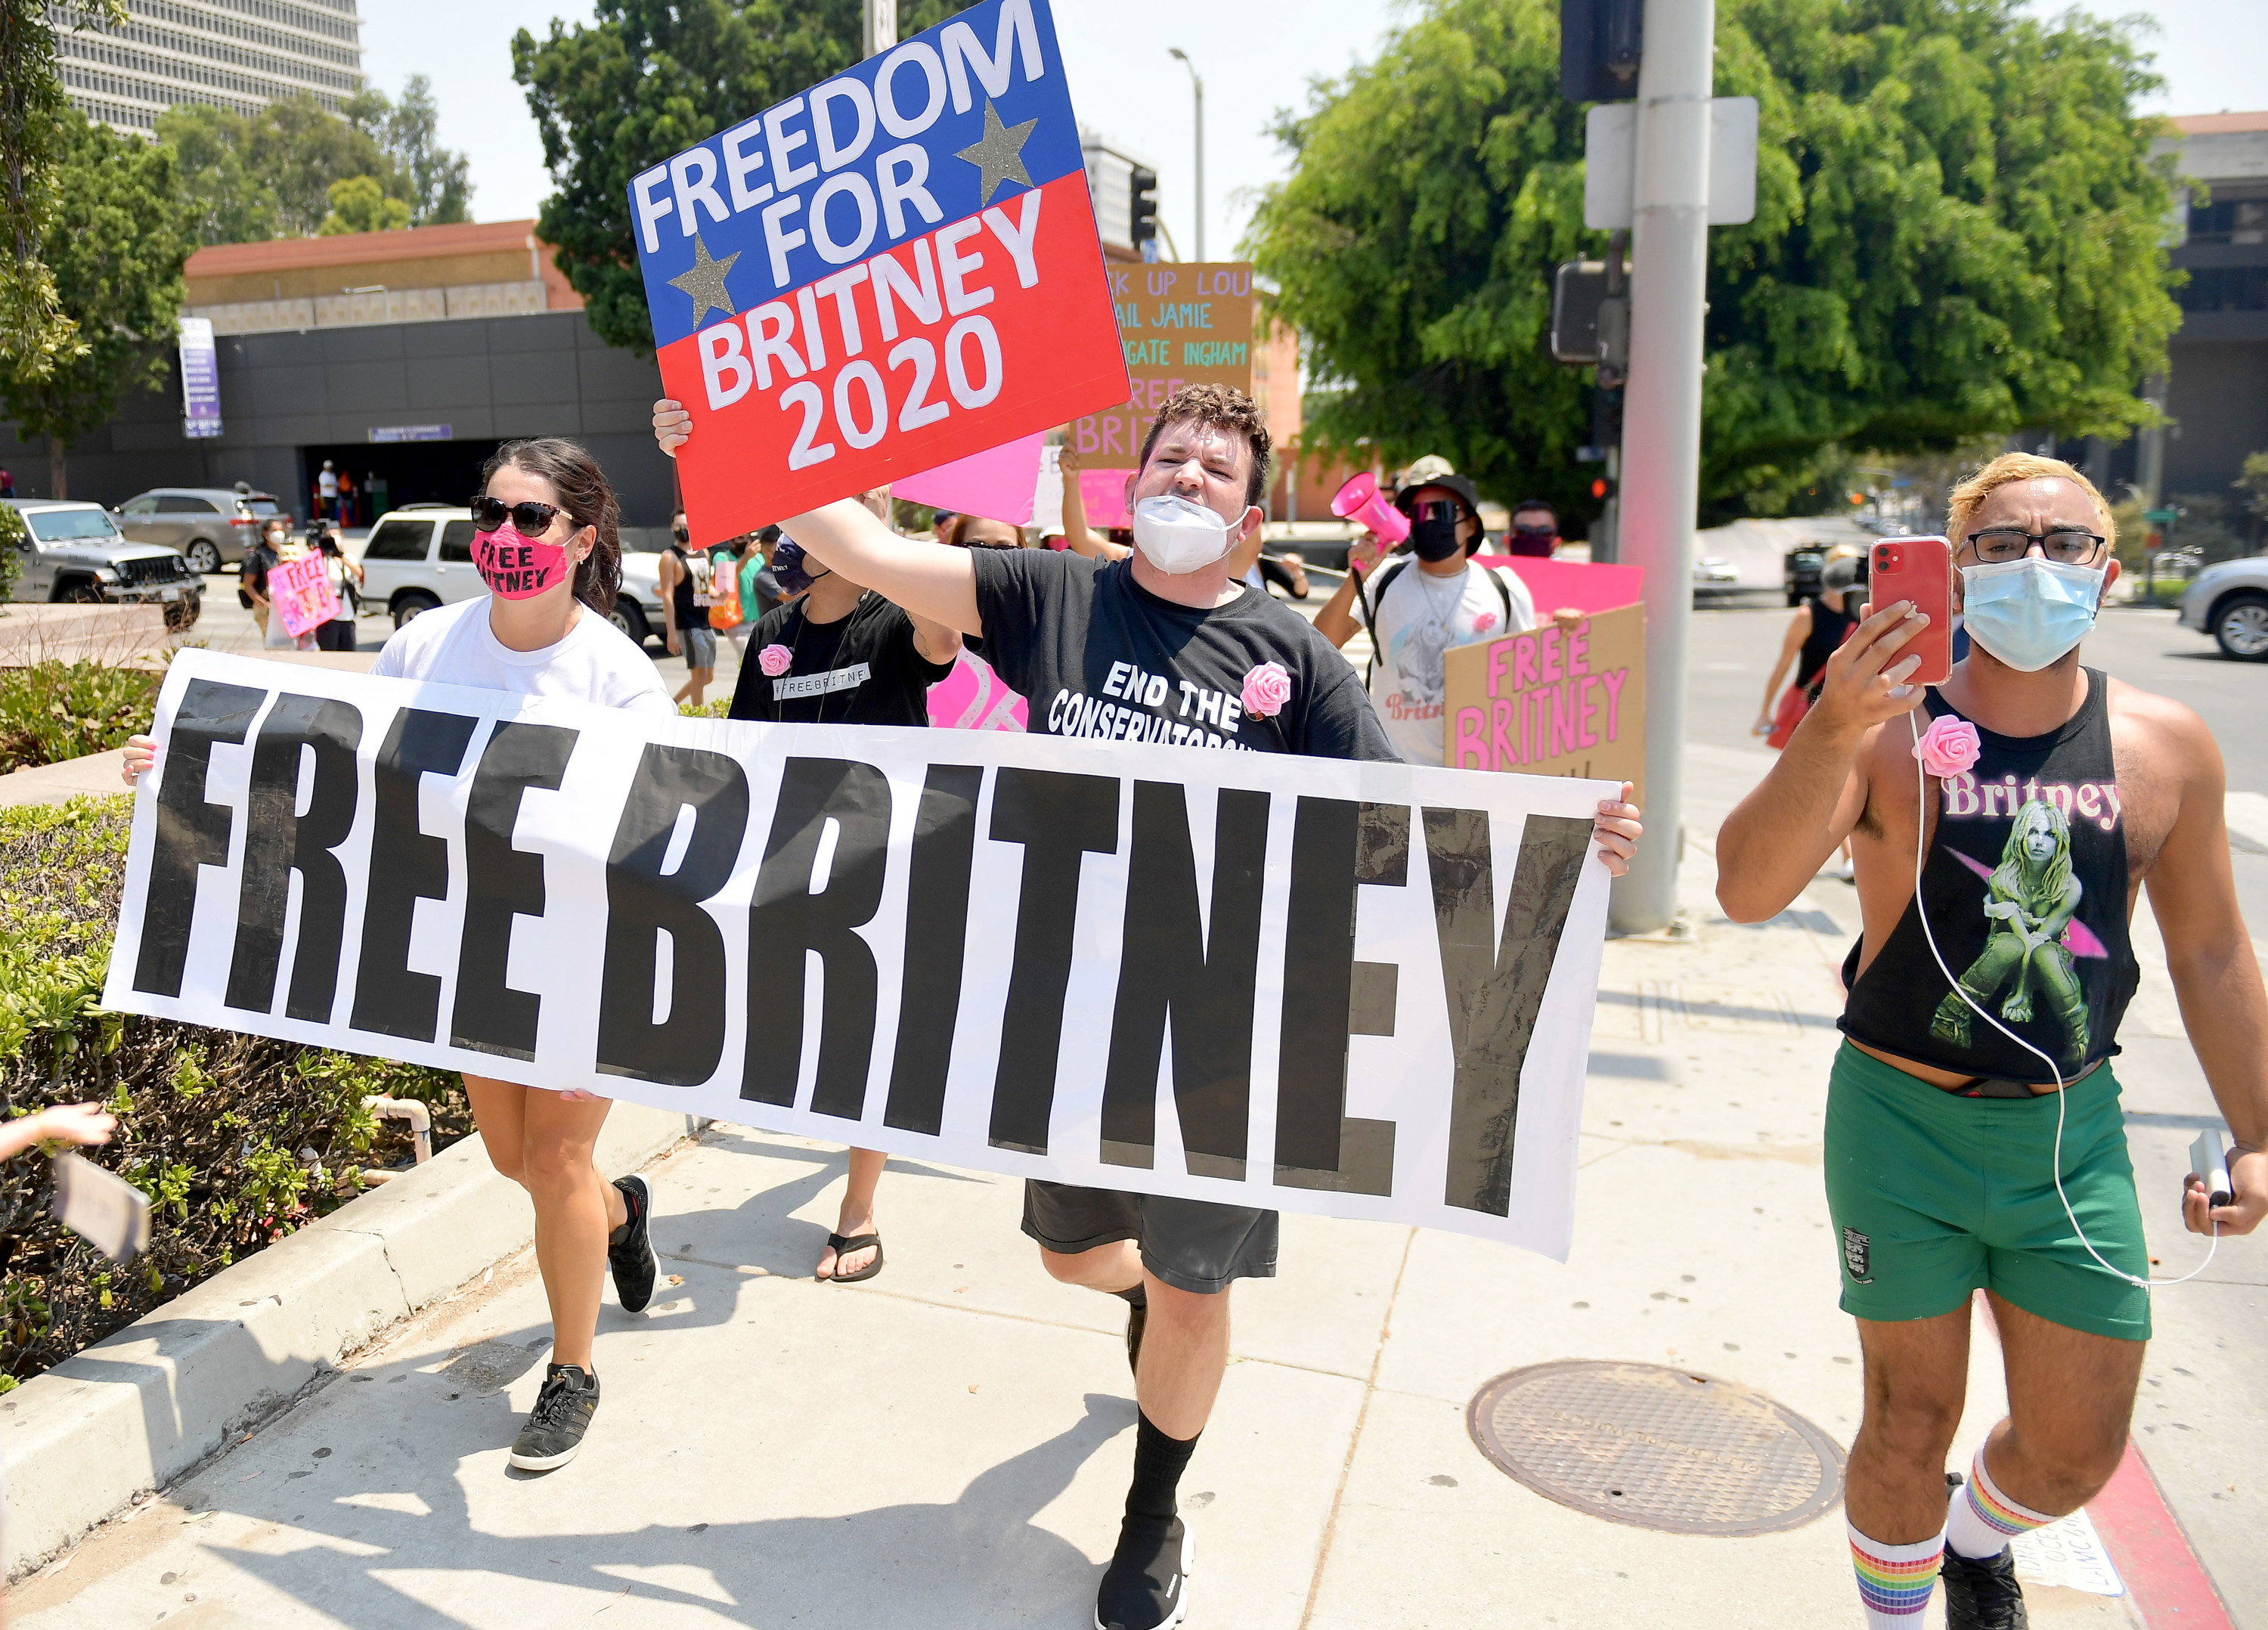 """Britney Spears supporters carry signs that read """"Free Britney"""""""